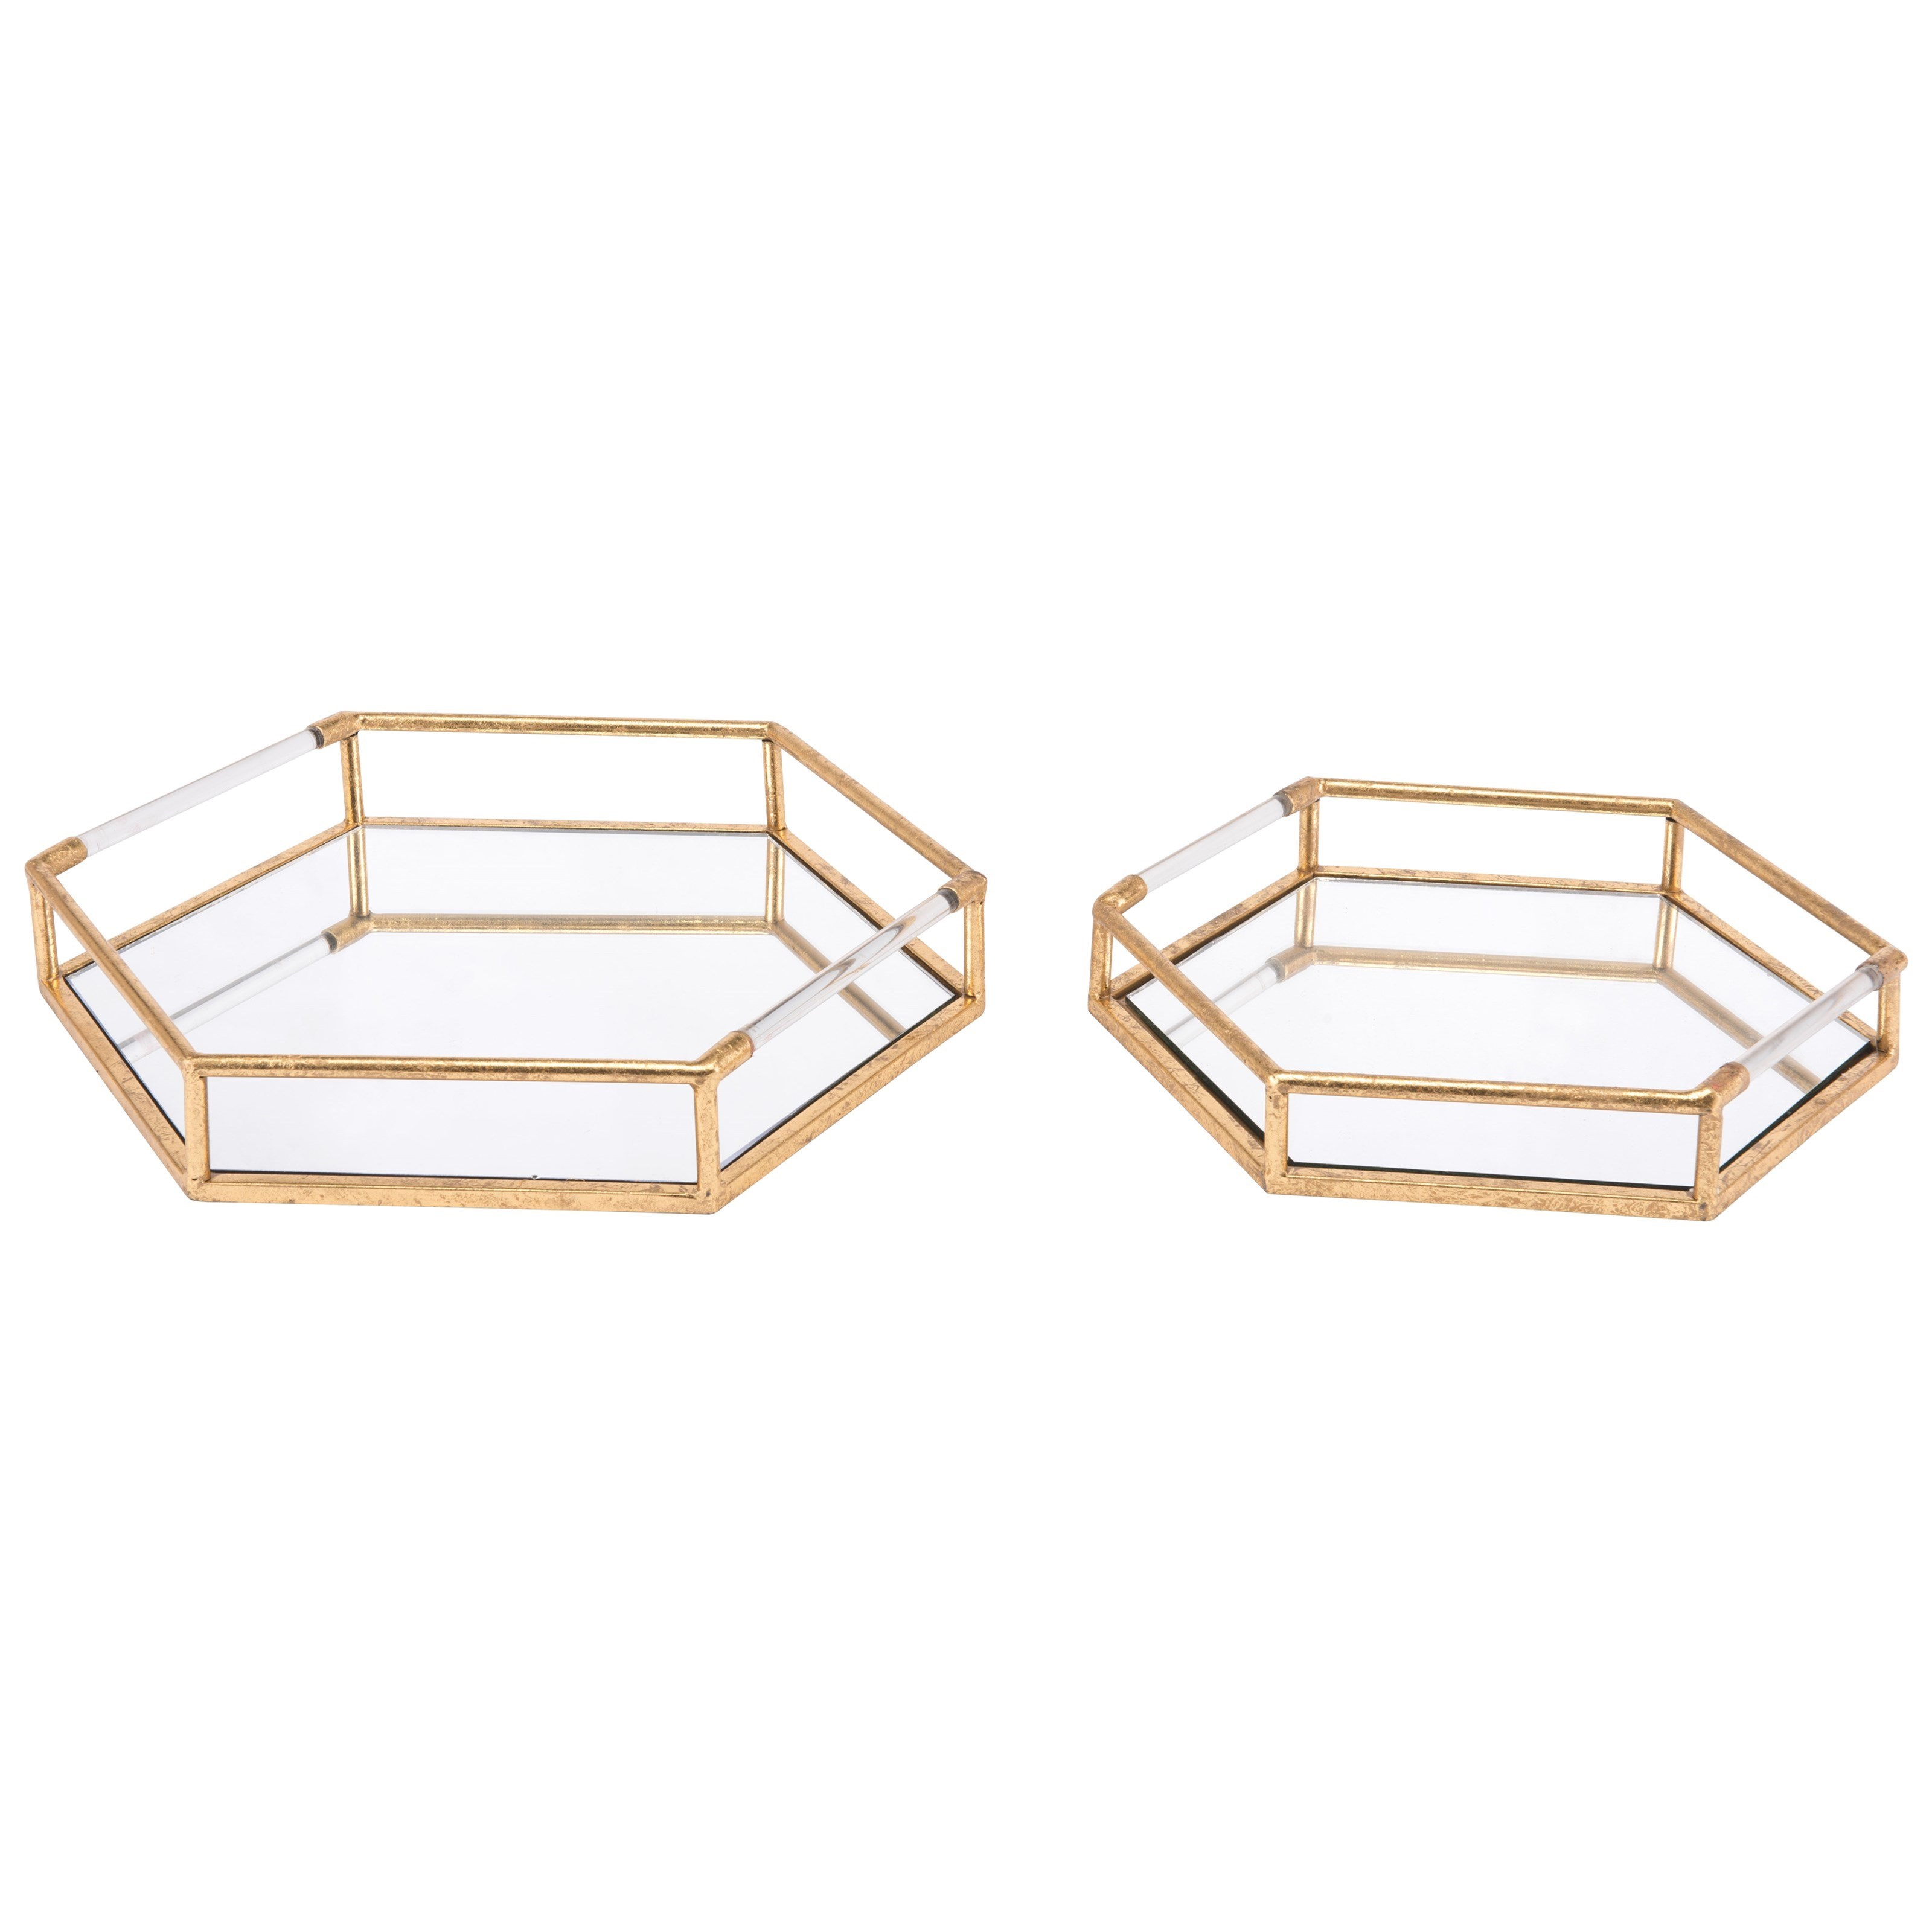 Zuo Boxes, Bowls and Trays Set of 2 Golden Trays - Item Number: A10641